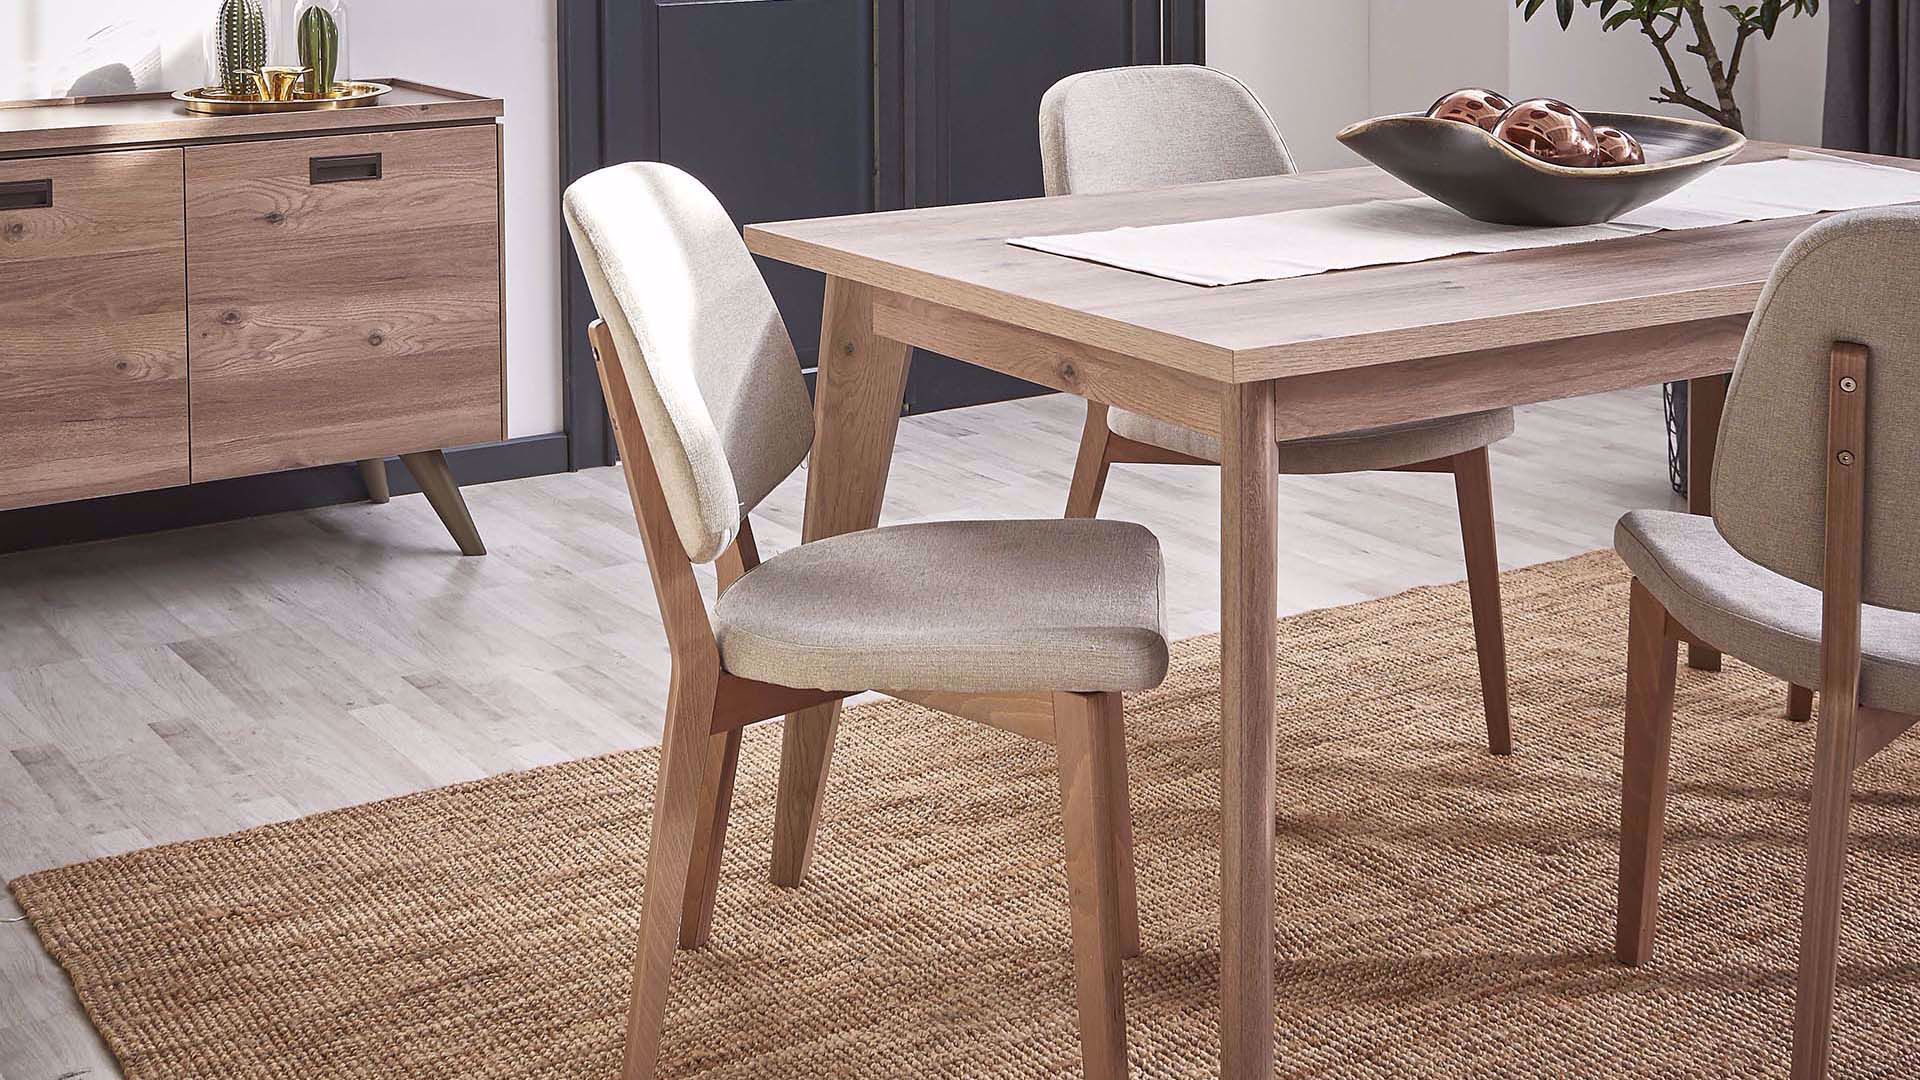 Sylva Collapsible Table 160*90 cm